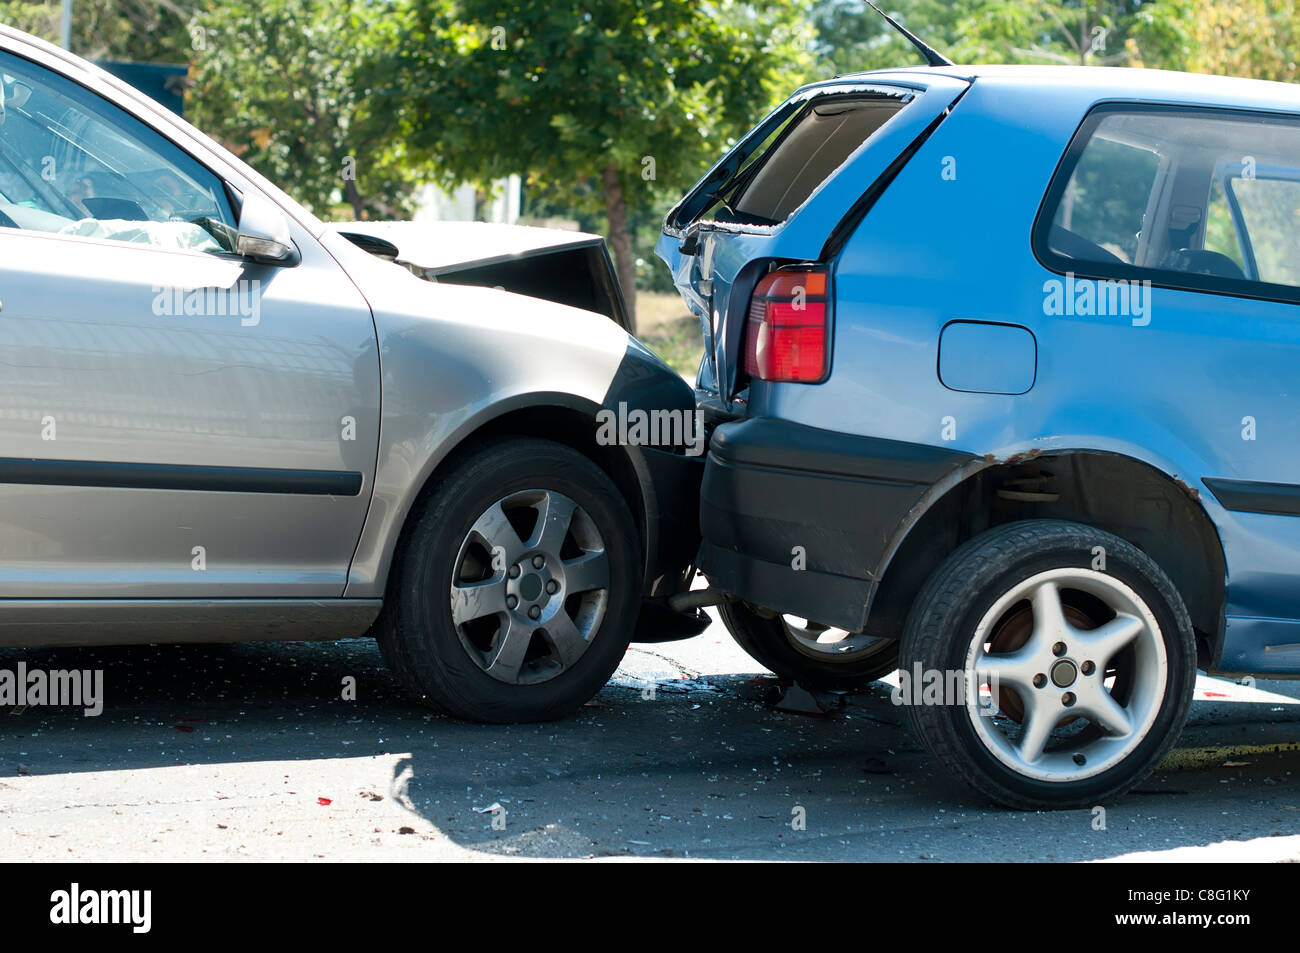 Two crashed cars close up - Stock Image